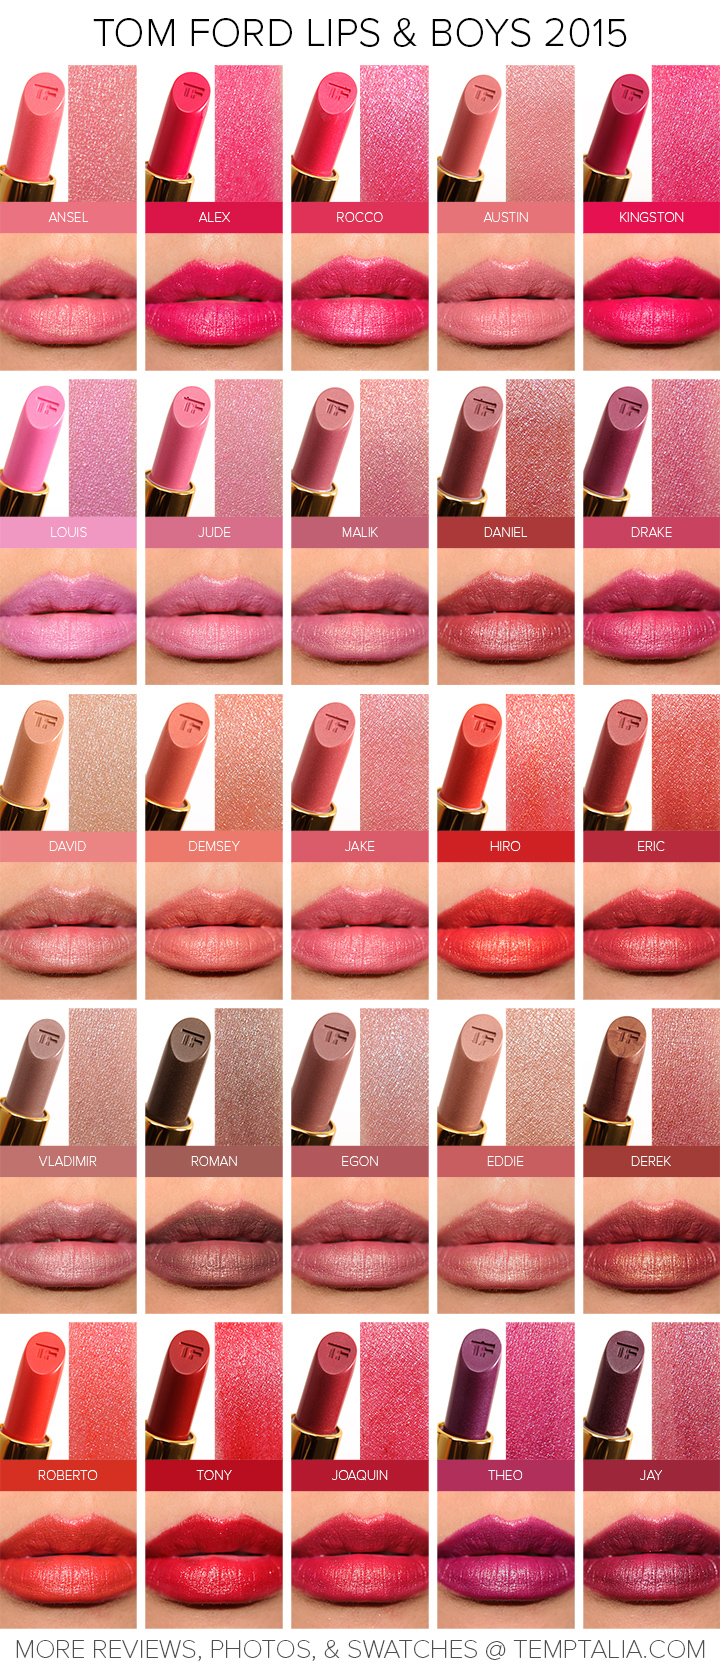 Tom Ford Lips & Boys 2015